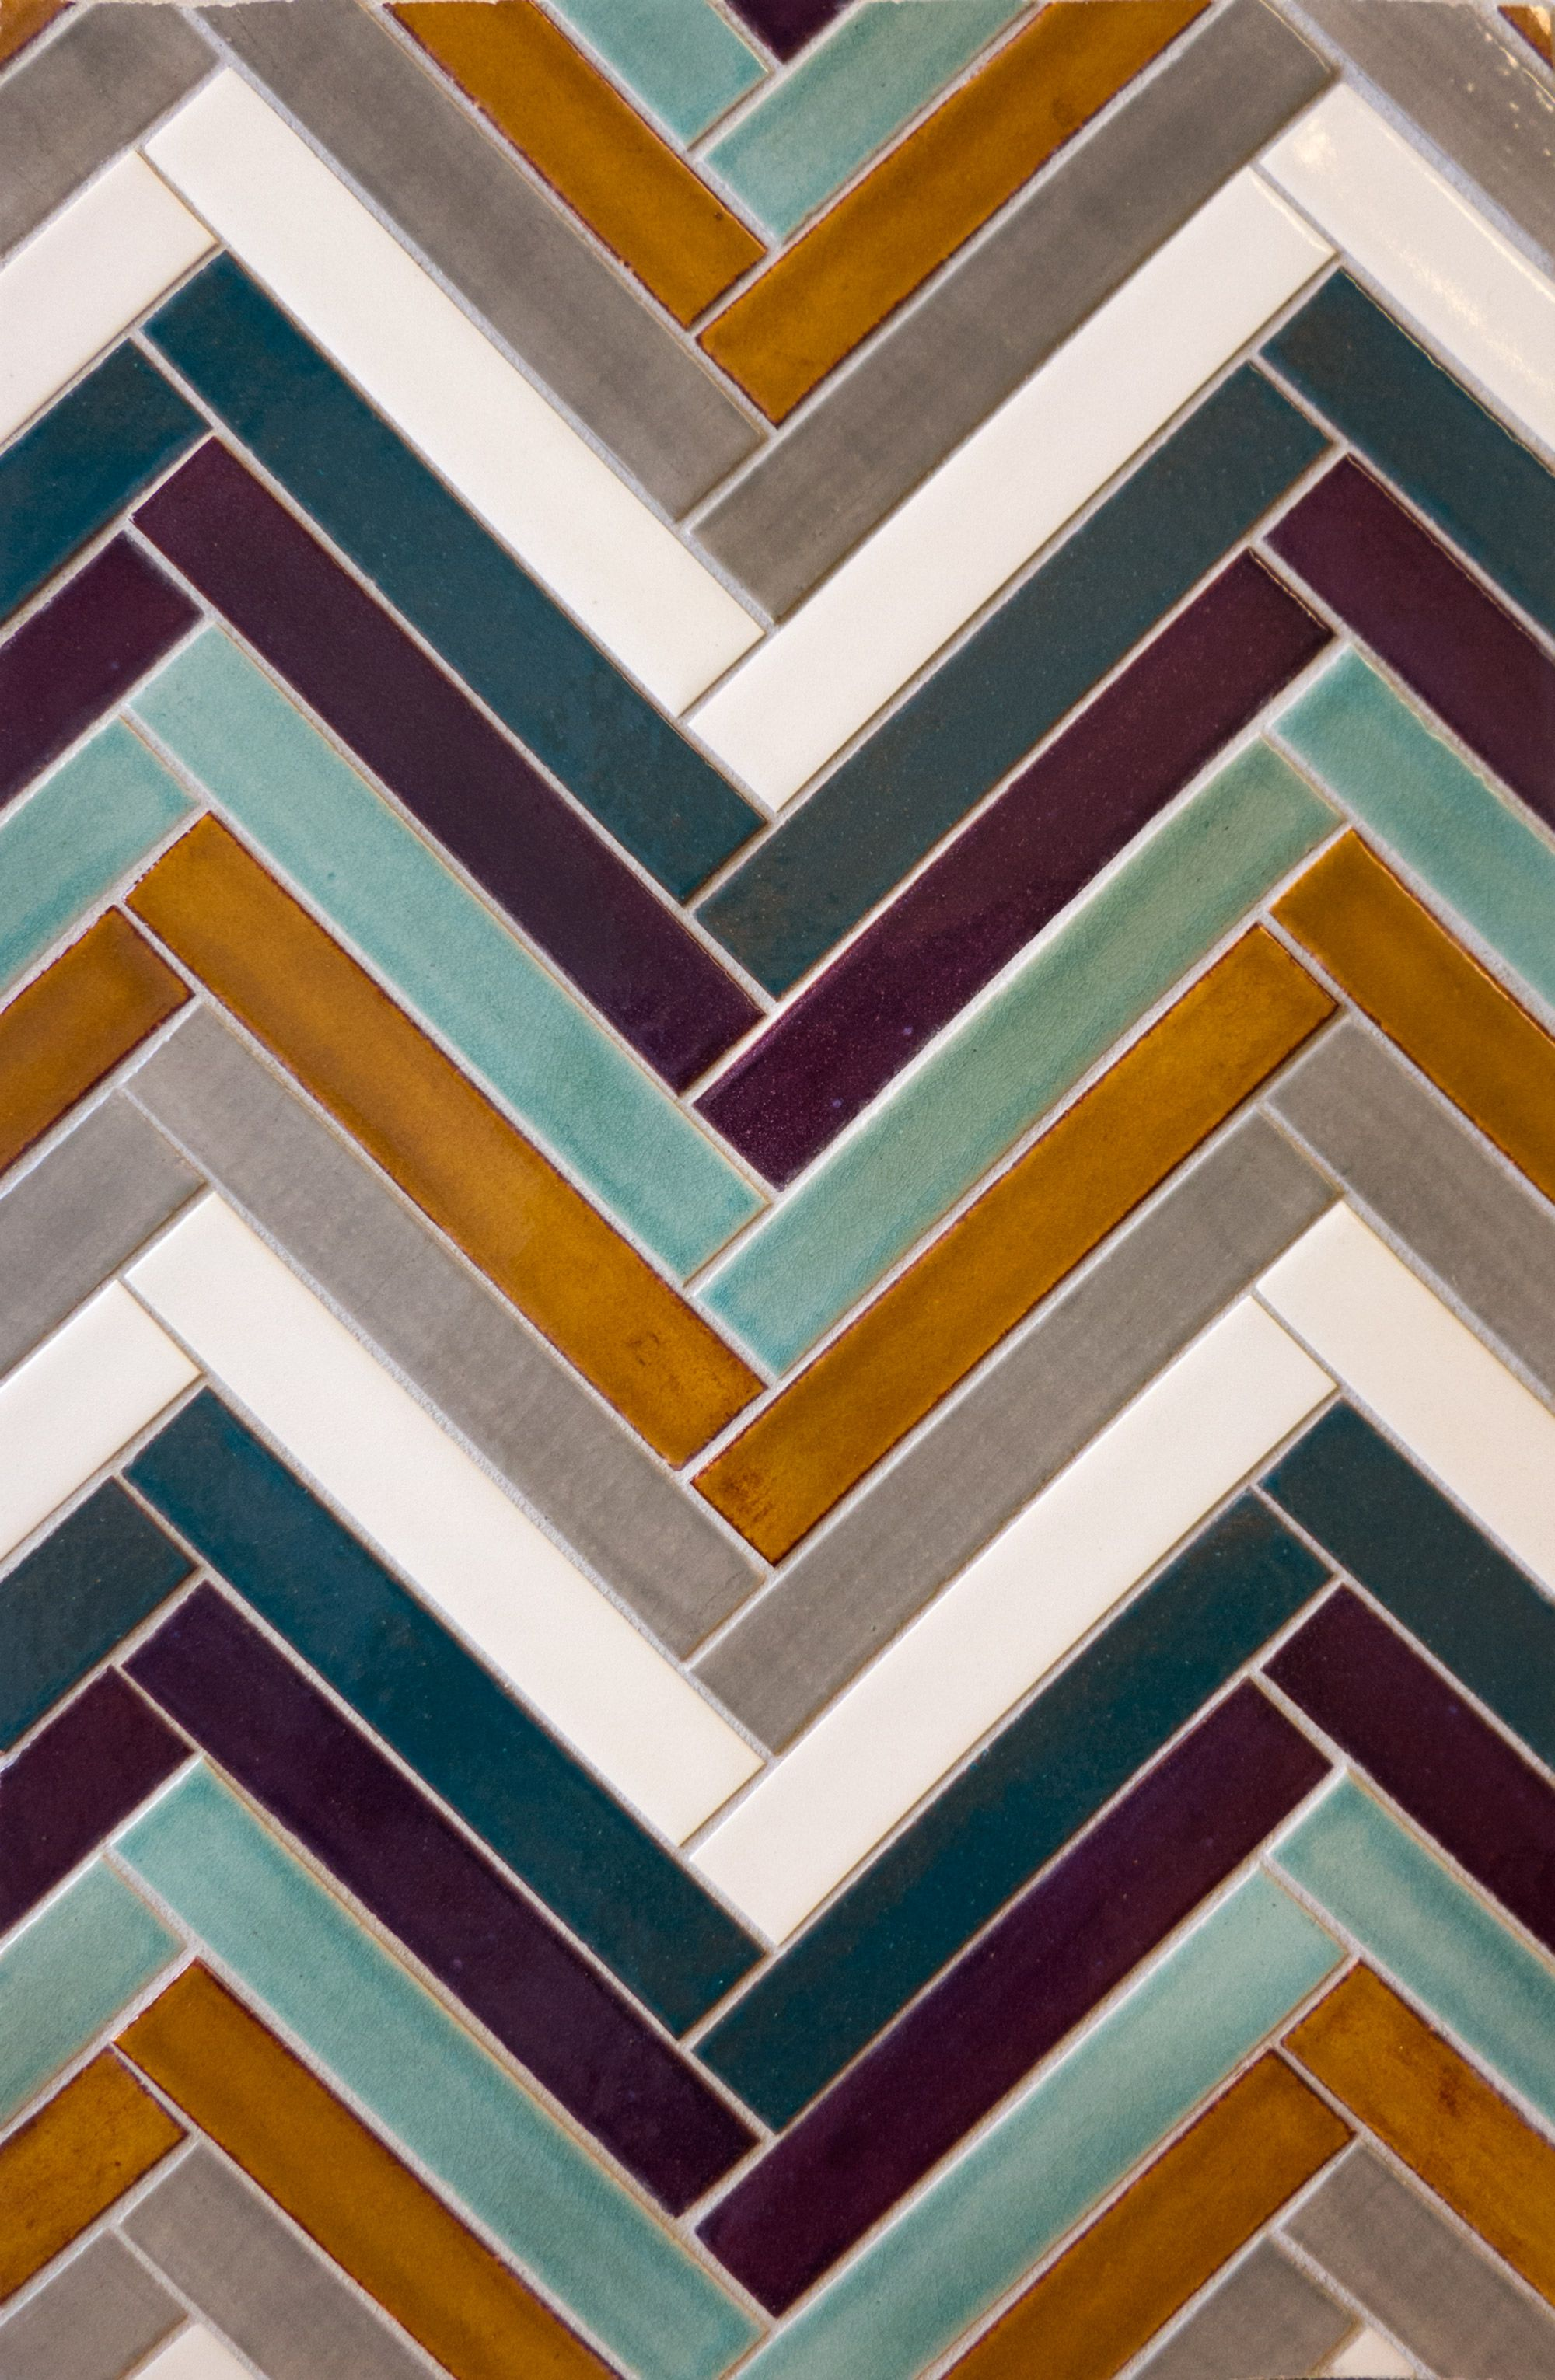 Subway Tile Mosaic Subway Tile Backsplash Mercury Mosaics Mercury Mosaics Handcrafted Tile Herringbone Tile